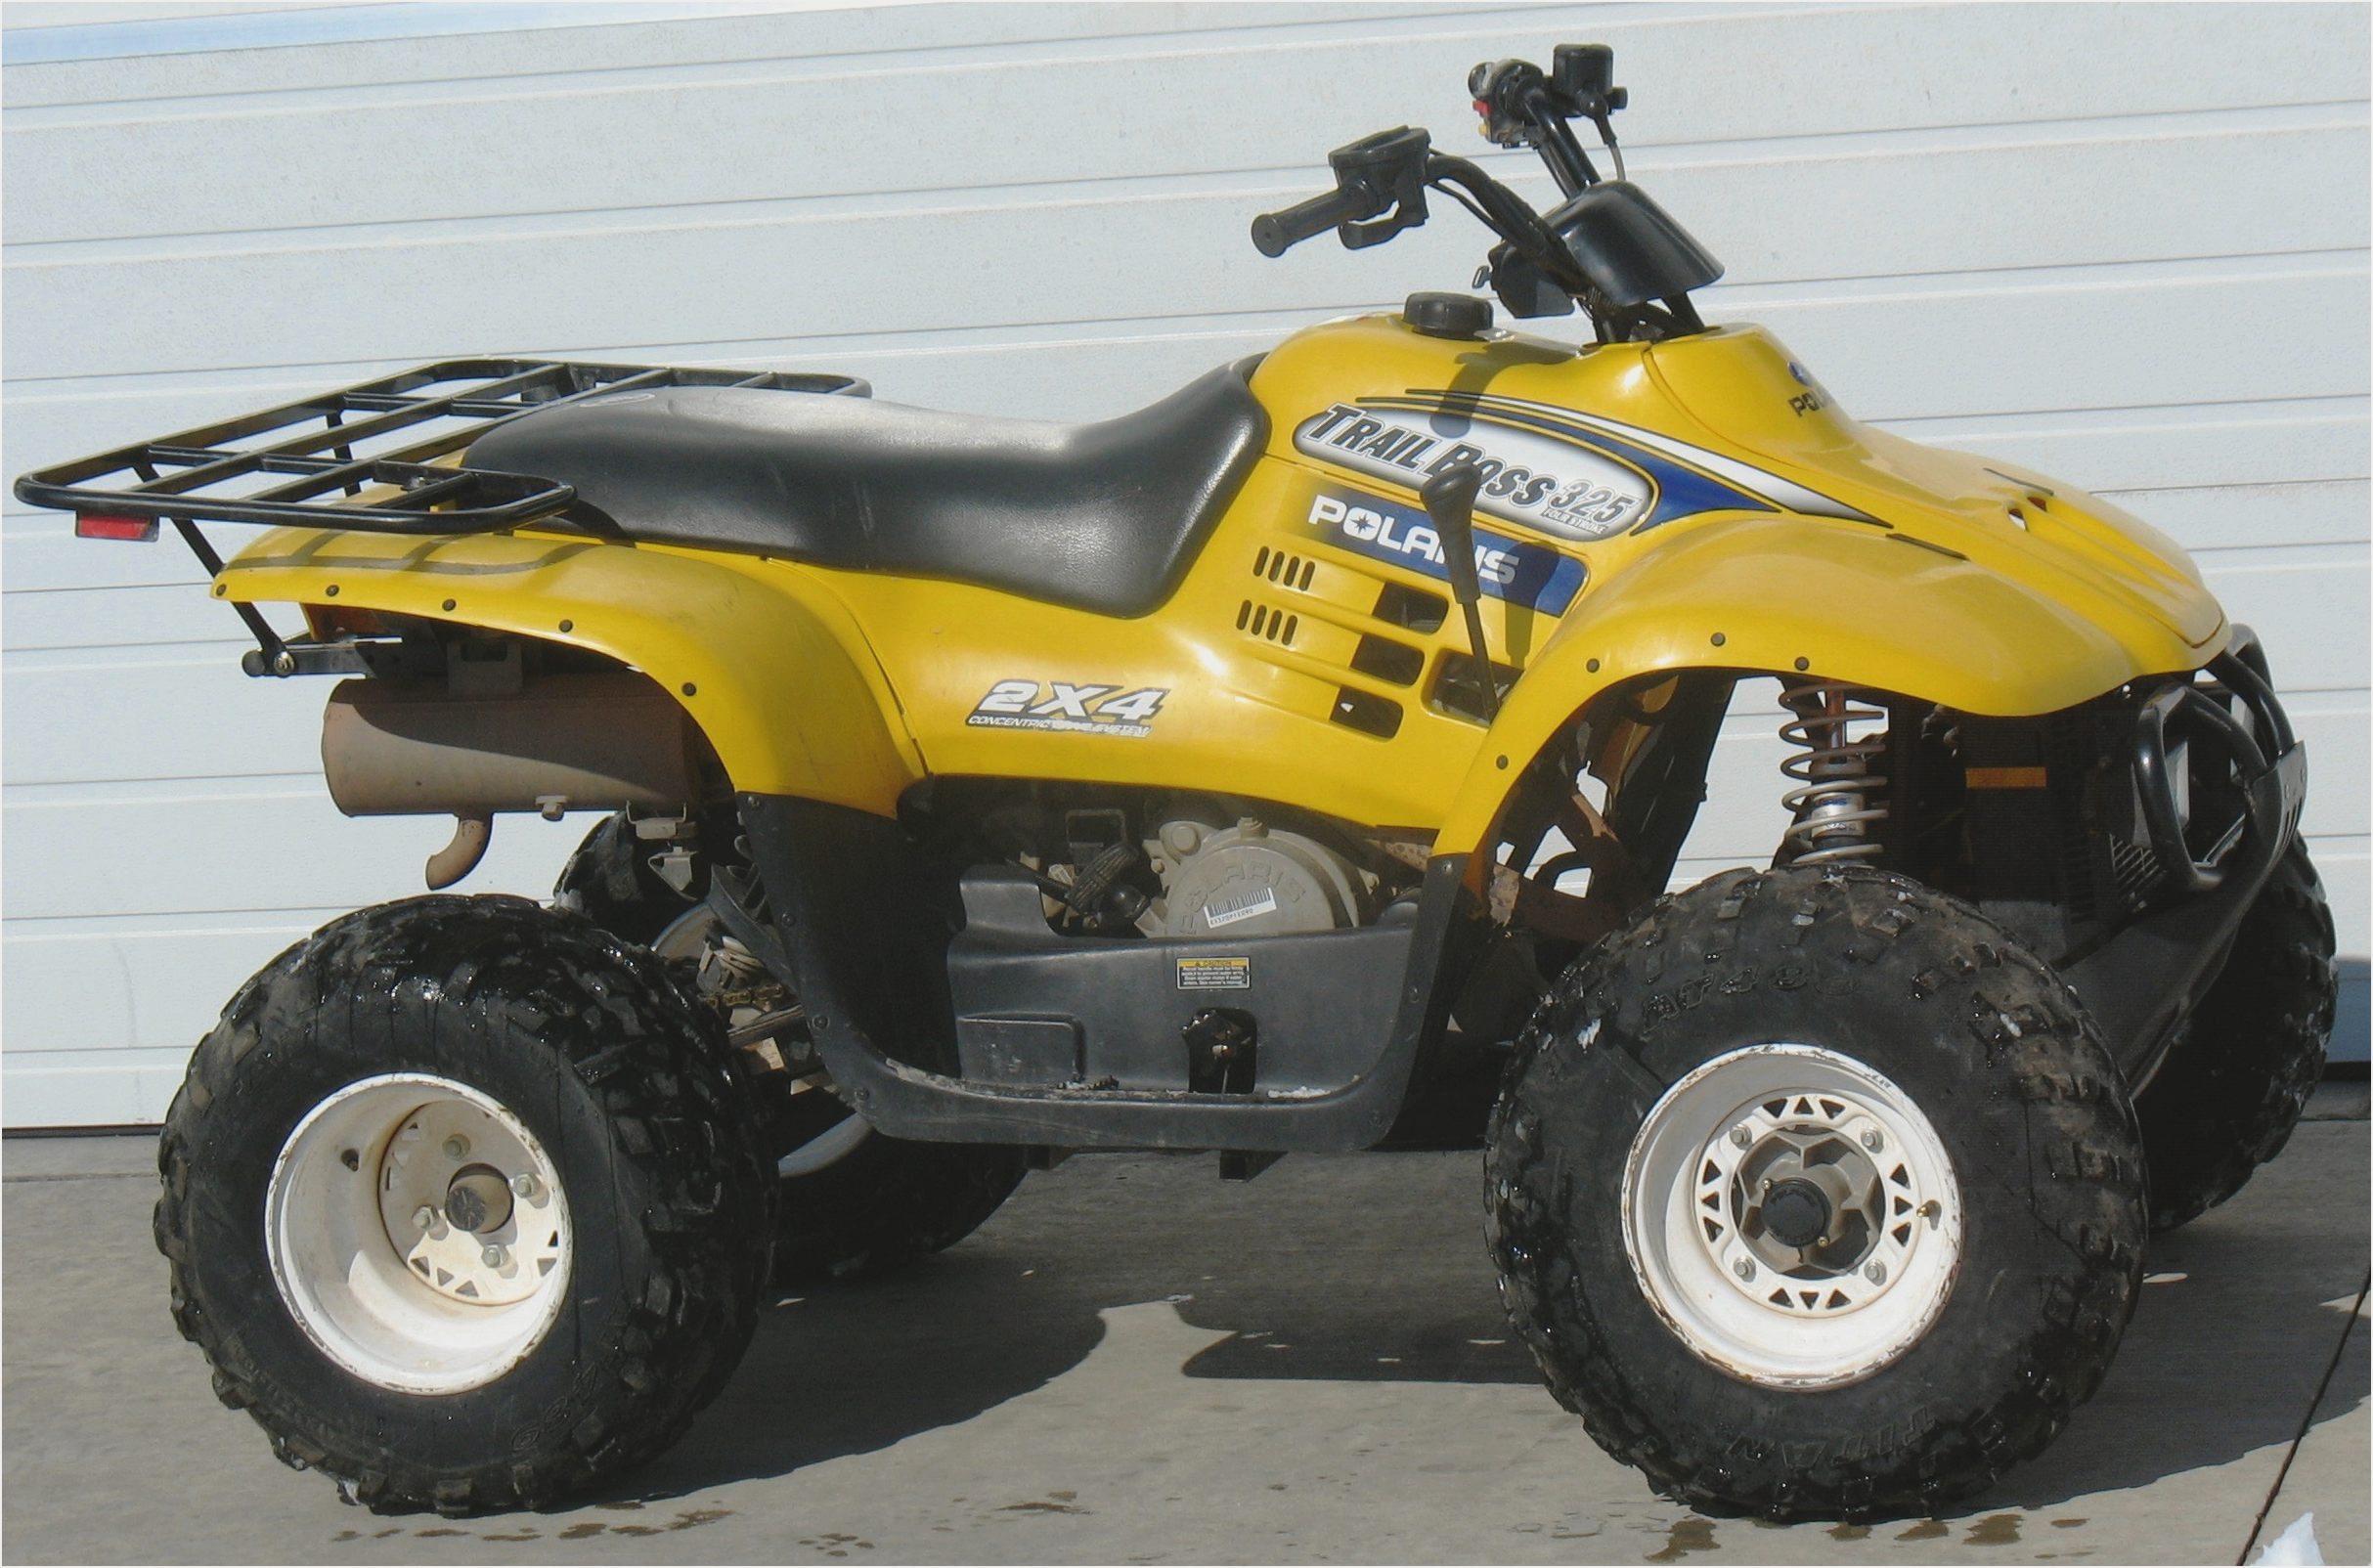 Polaris Trail Boss 330 images #174313